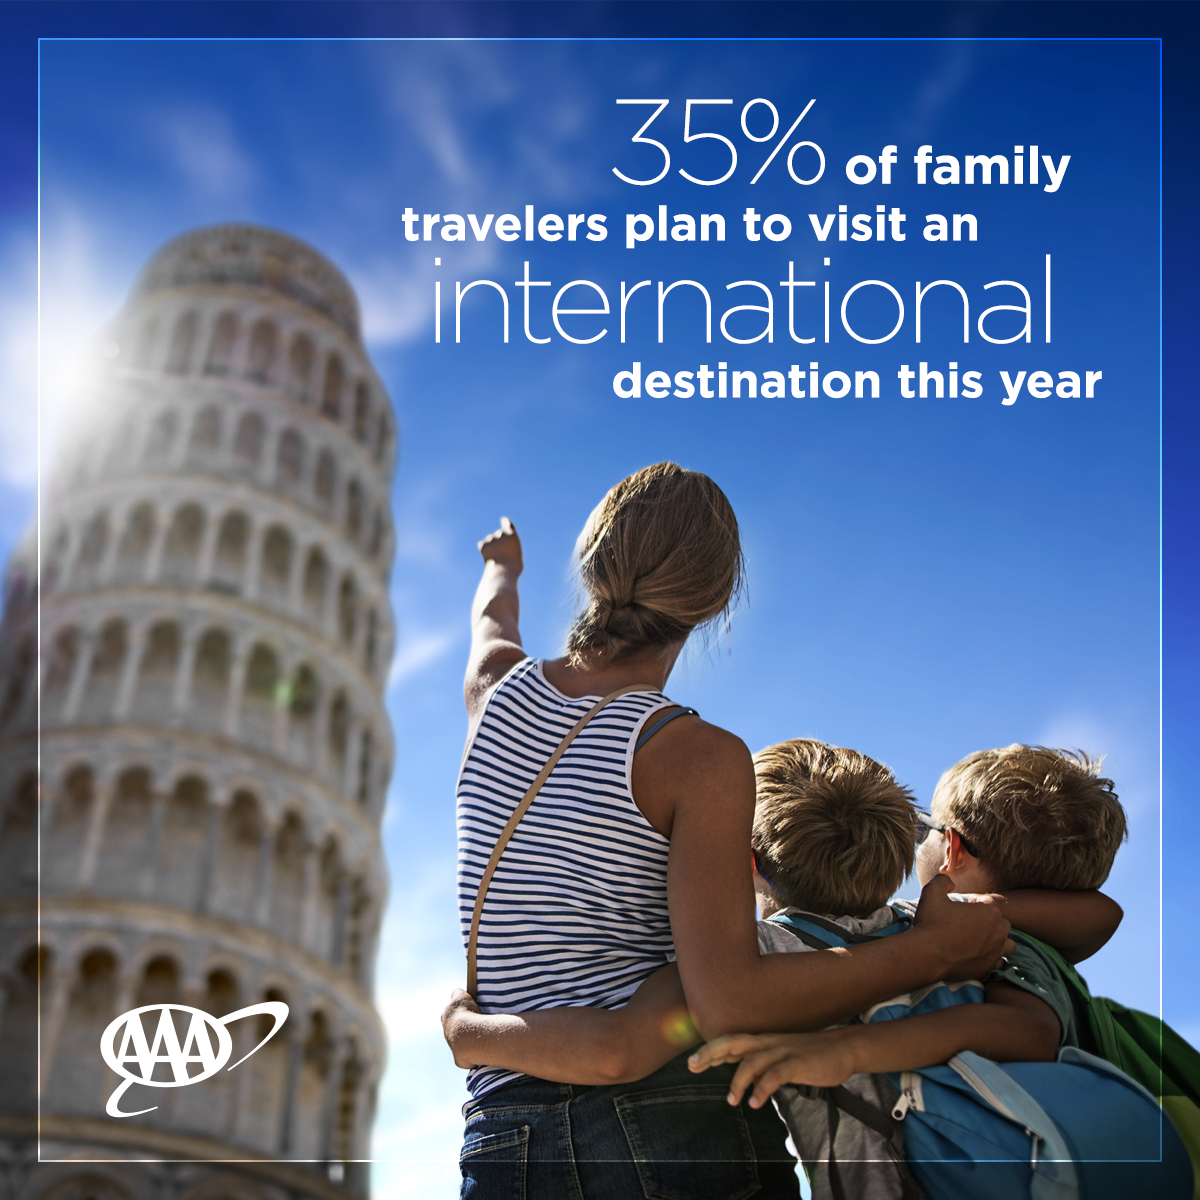 International travel is a hot trend for family vacations